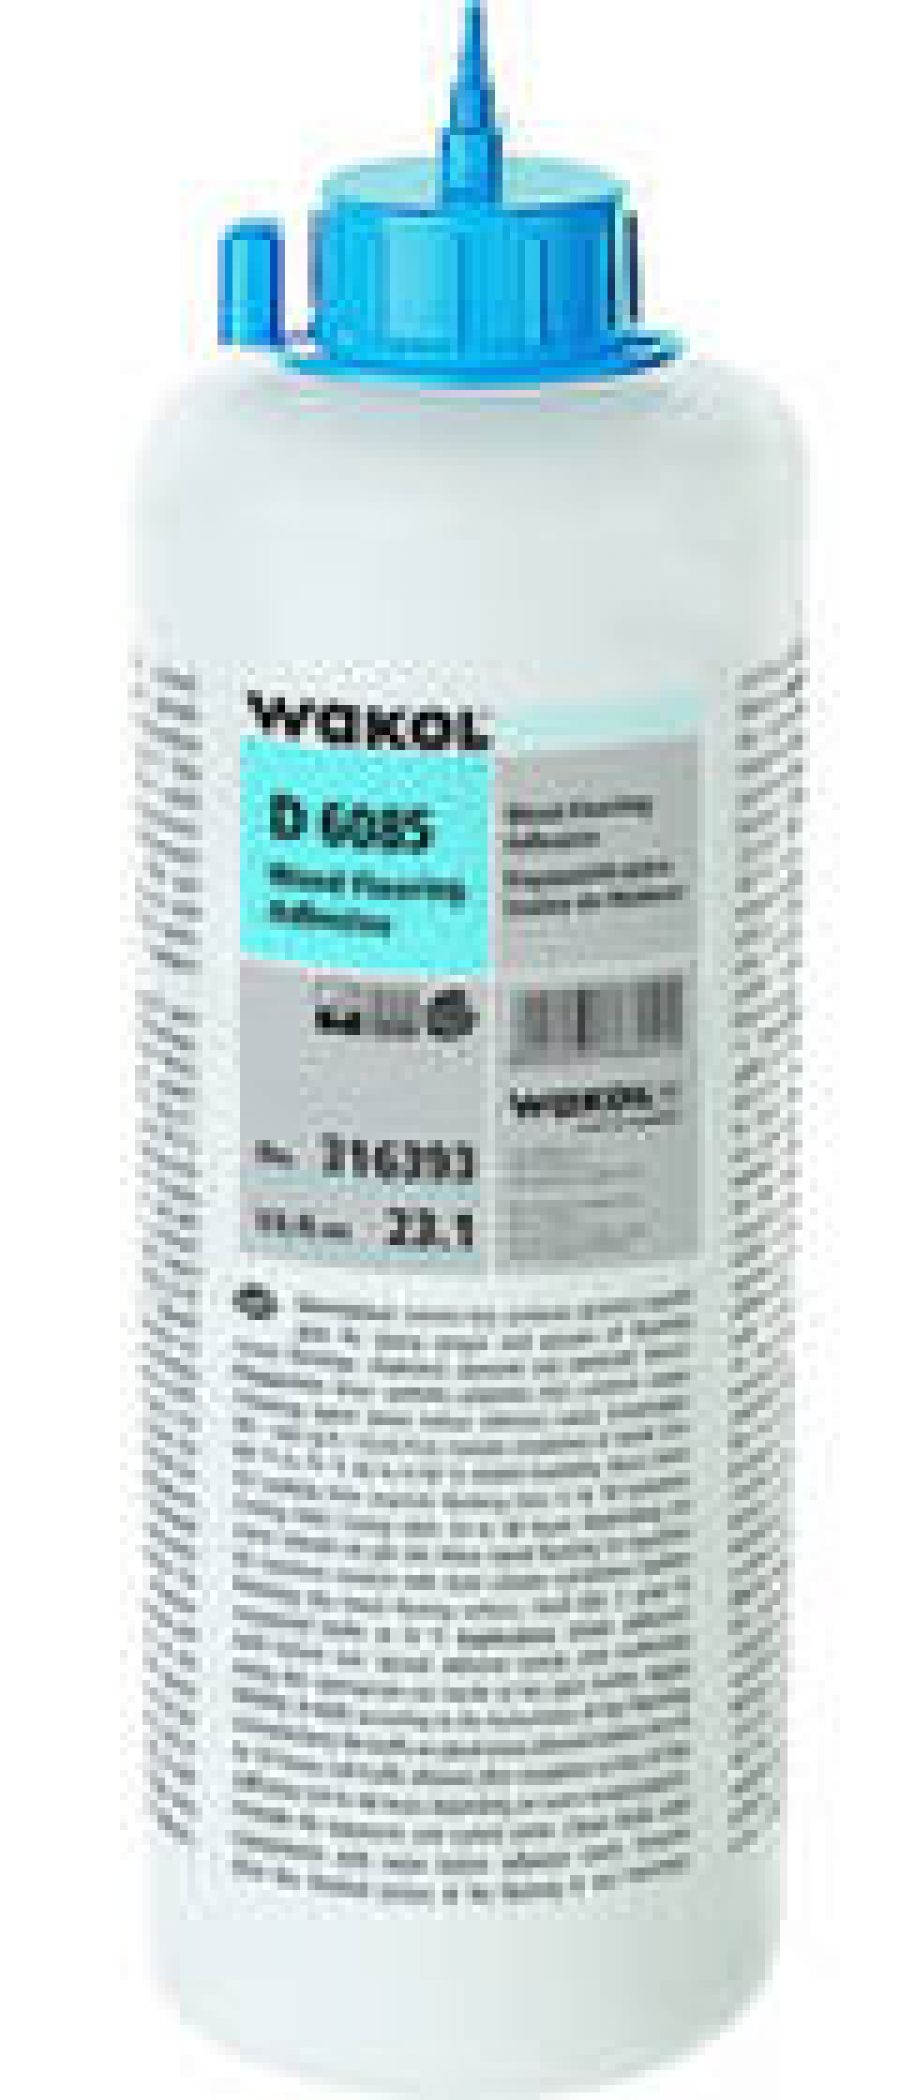 WAKOL D 6085 Tongue and Groove Glue